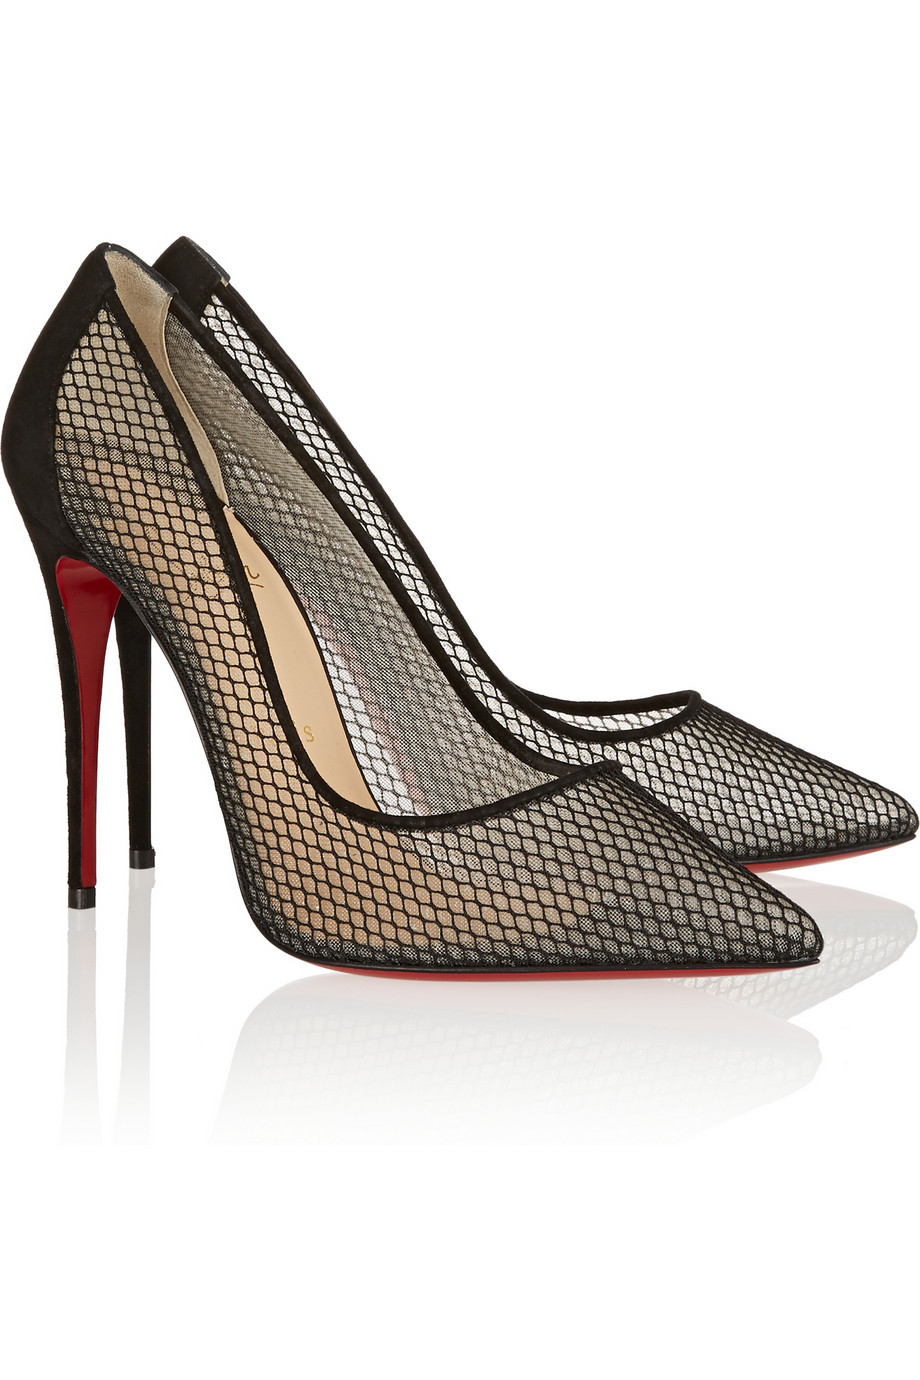 520c7b972d Christian Louboutin Follies Resille 100 Suede-trimmed Mesh Pumps in ...